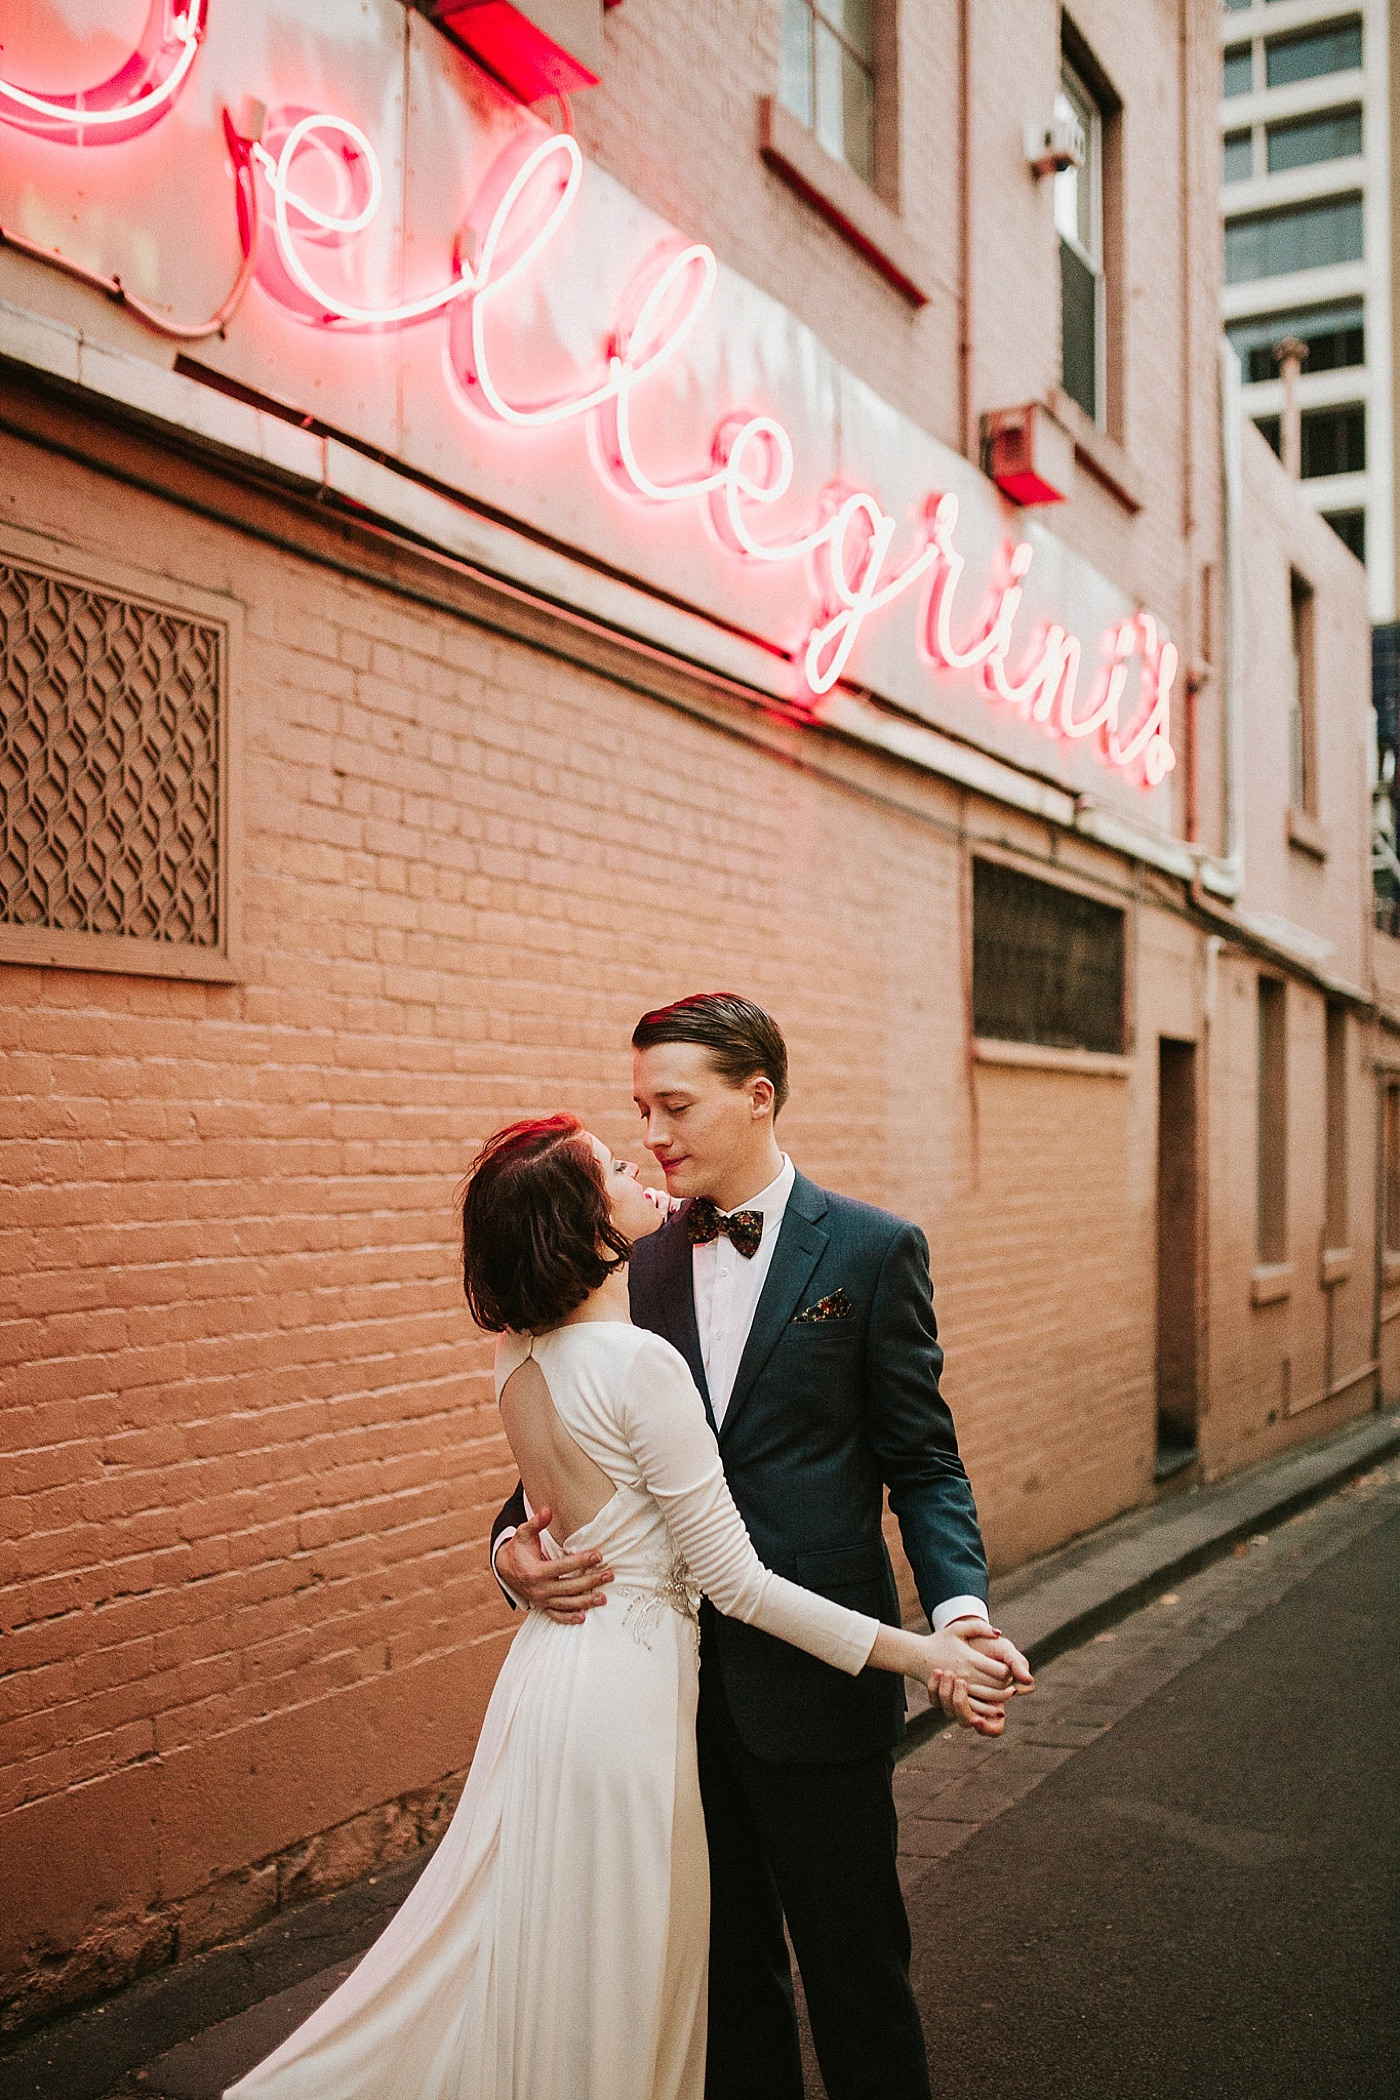 Emma&Morgan_Melbourne-Vintage-Elegant-Fun-CBD-Small-Elopement-Wedding_Melbourne-Wedding-Photography-50